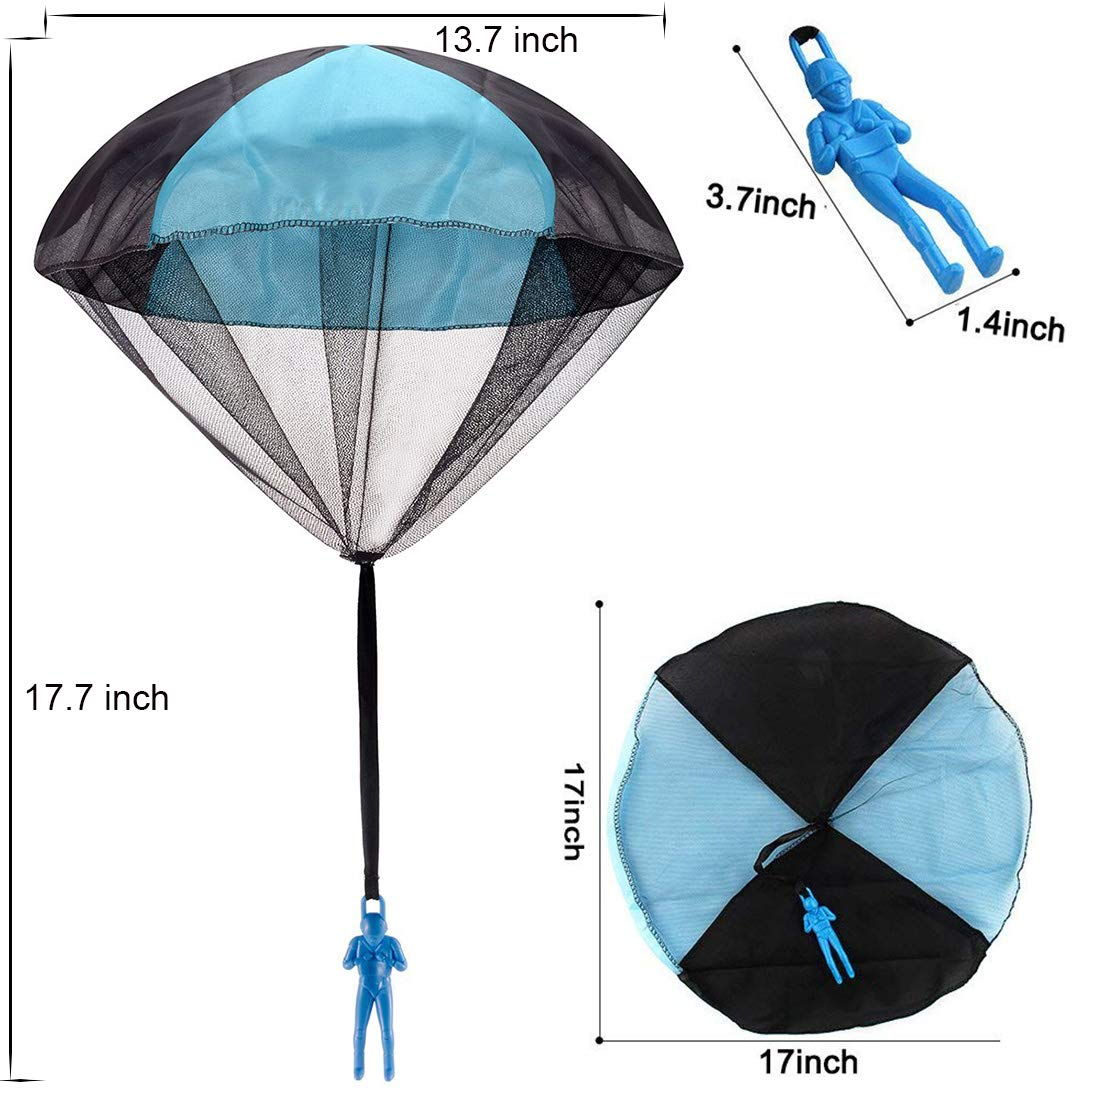 Huihui Decoration 7 Pieces Parachute Toys,Tangle Free Parachute Men Throwing Hand Throw Soldiers Toss It Up and Watching Landing Outdoor Parachute for Kids by Huihui Decoration (Image #2)